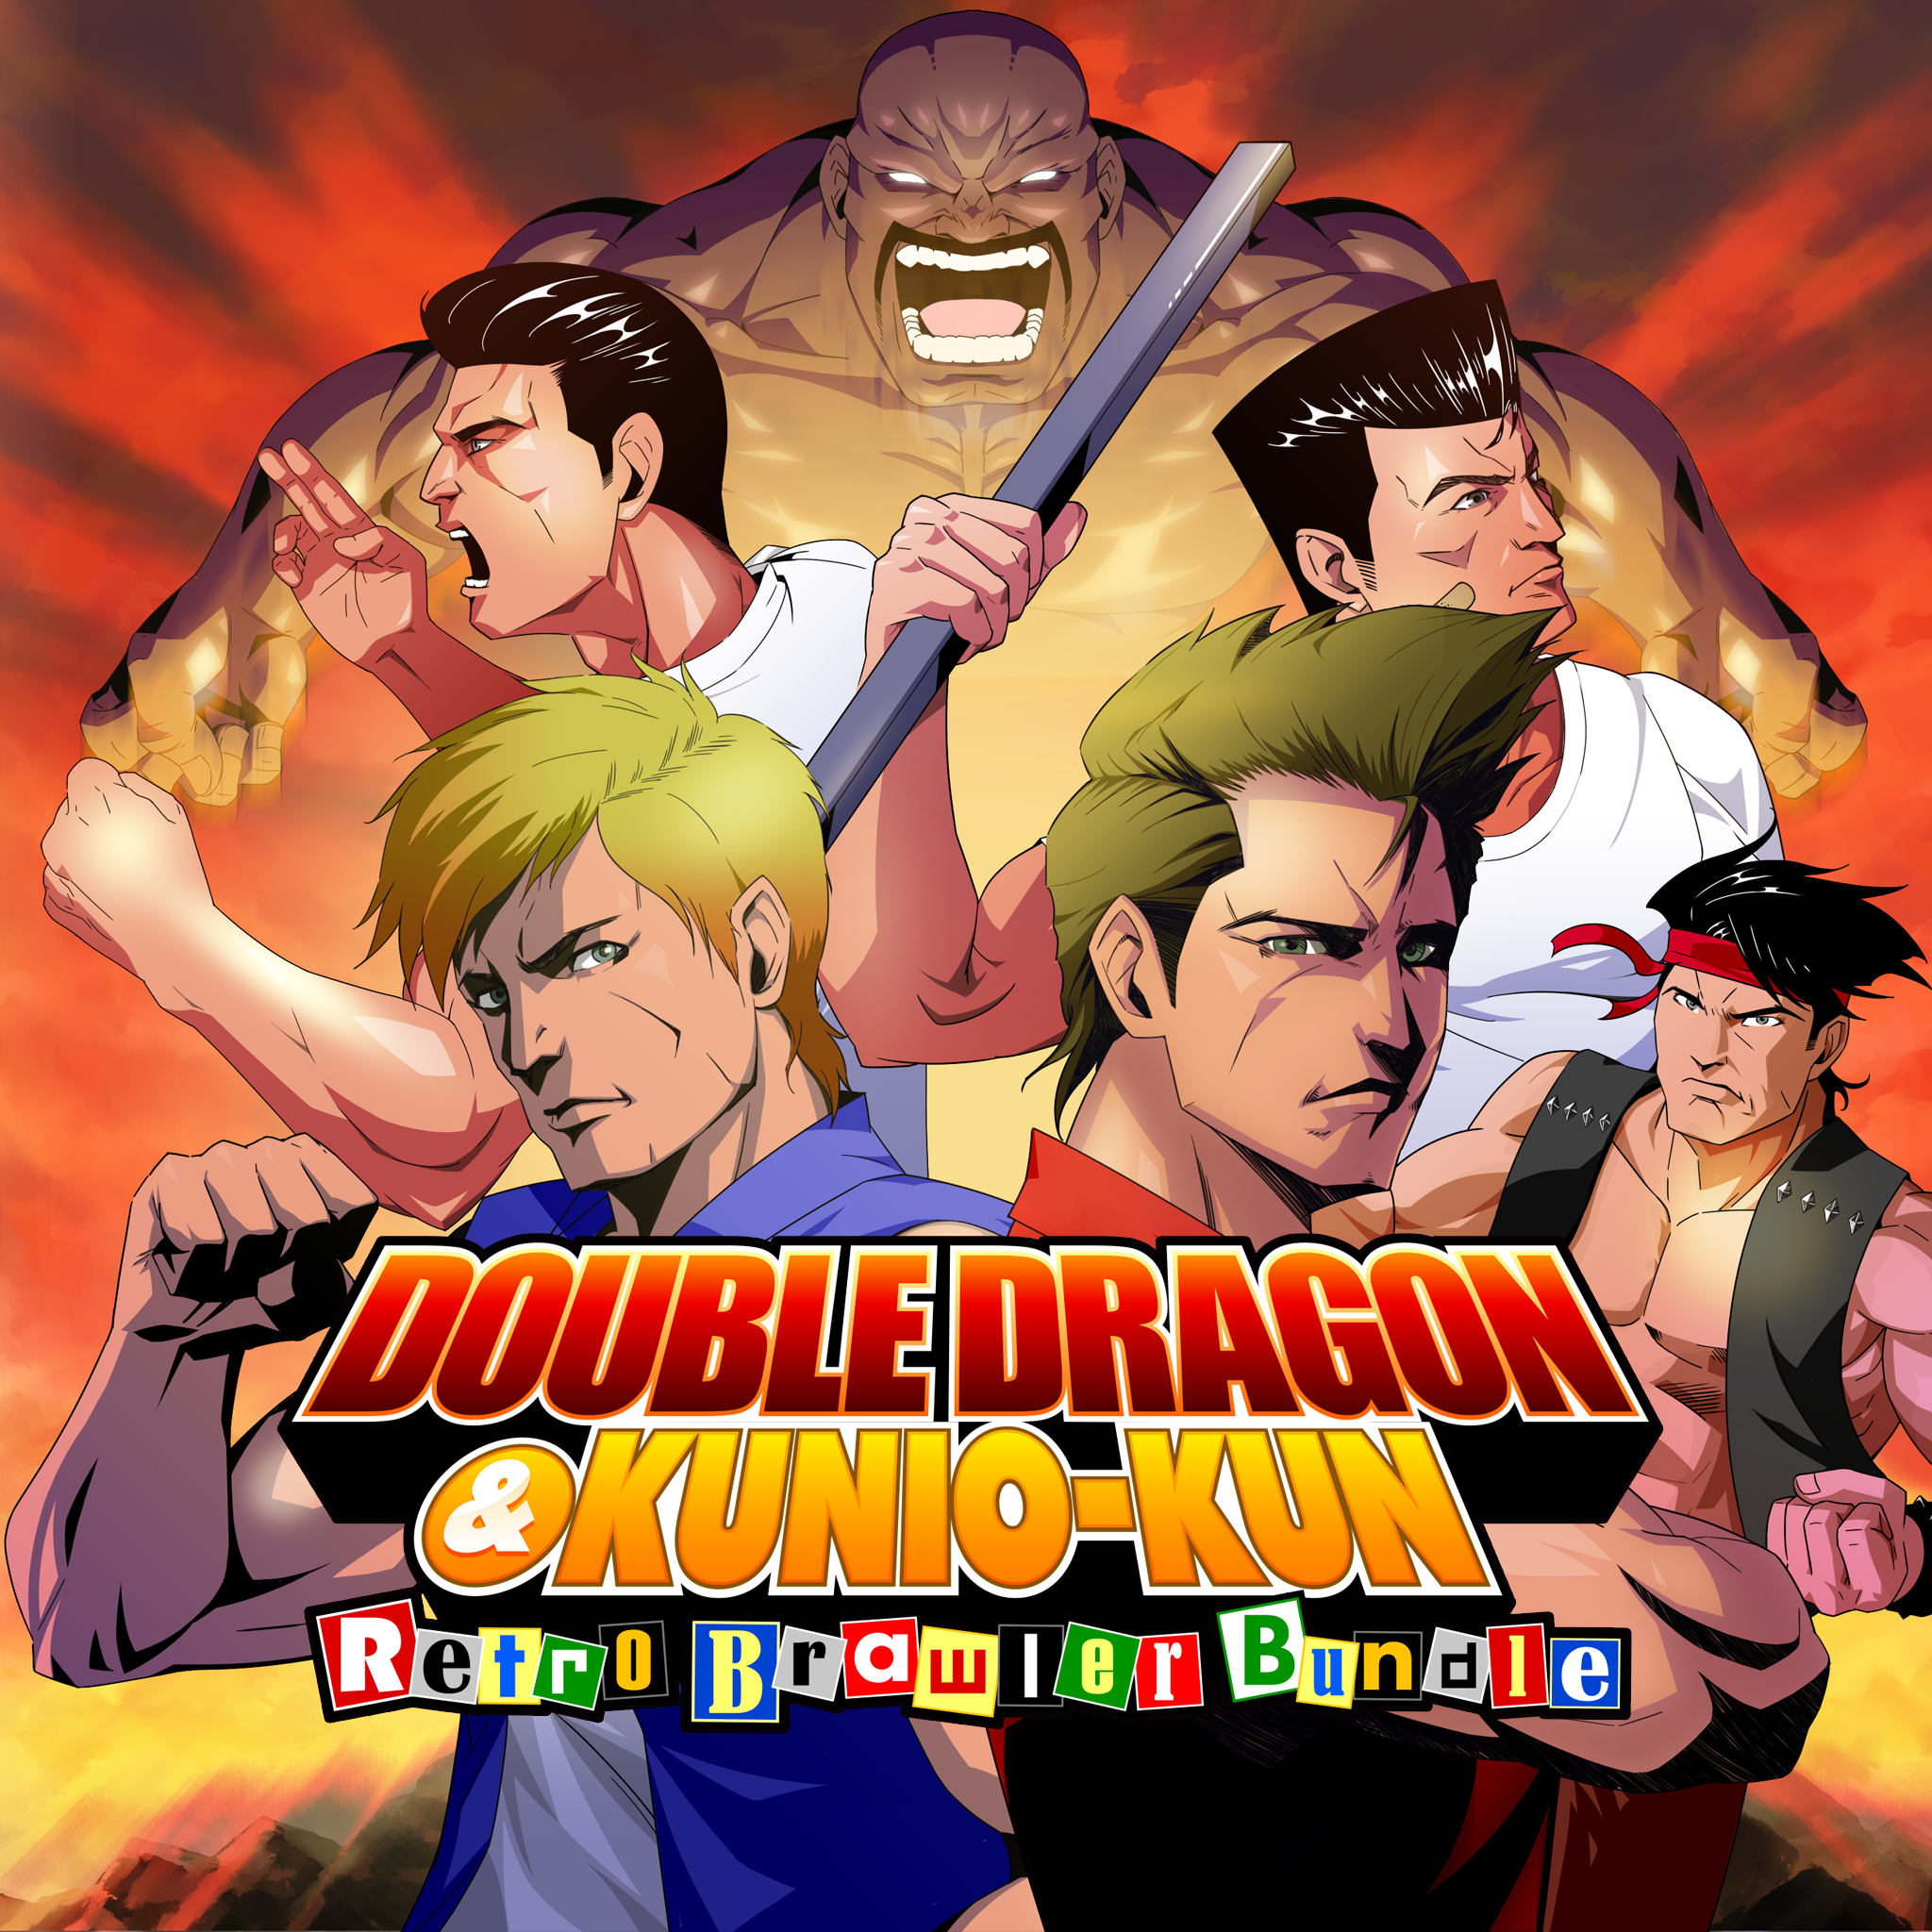 Double Dragon And Kunio Kun Retro Brawler Bundle Ps4 Price